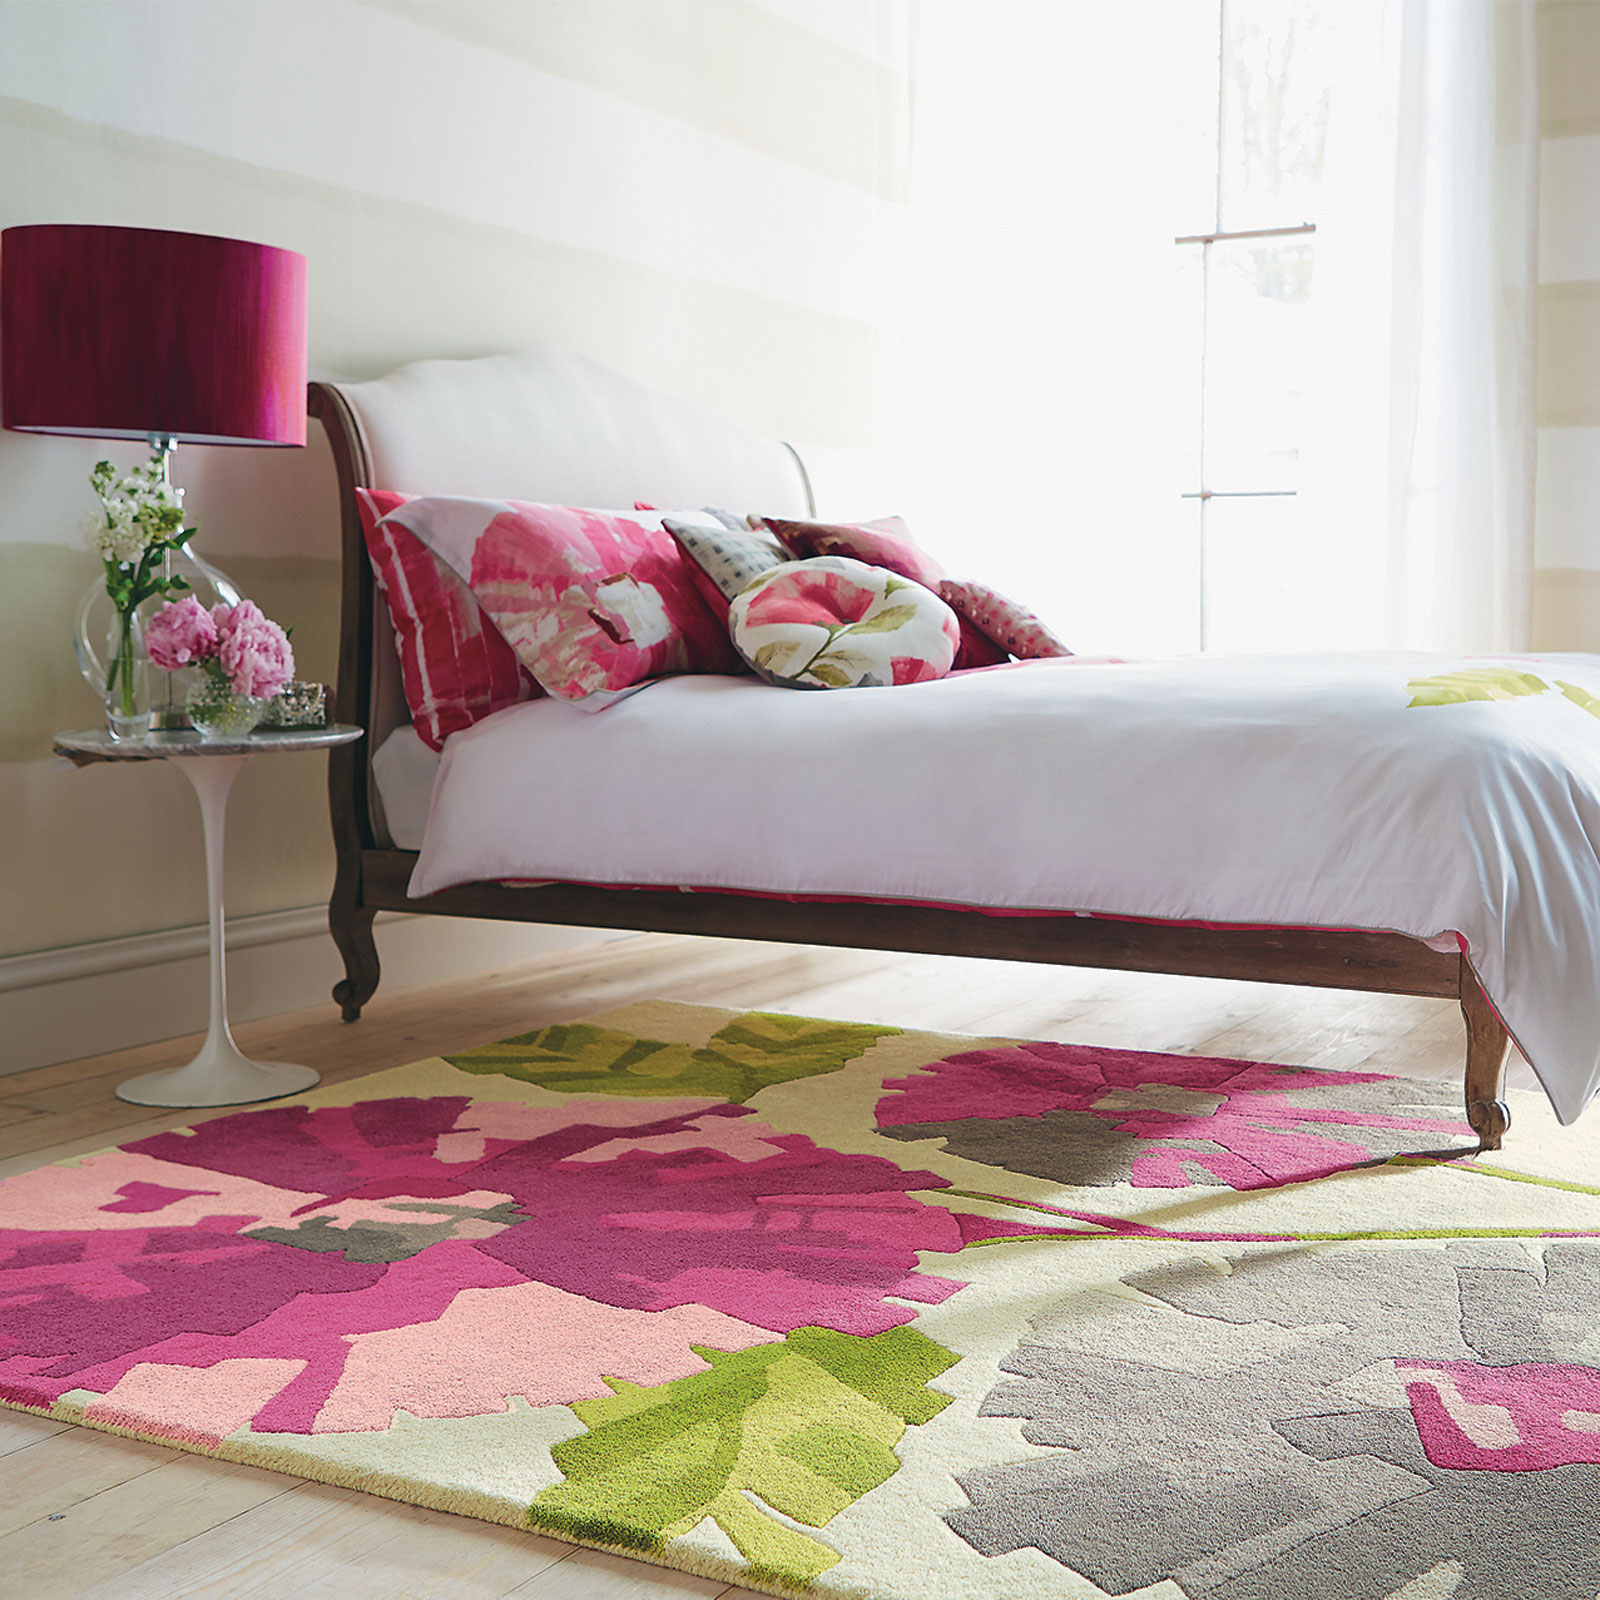 Harlequin Hermosa Rugs 43902 in Pink